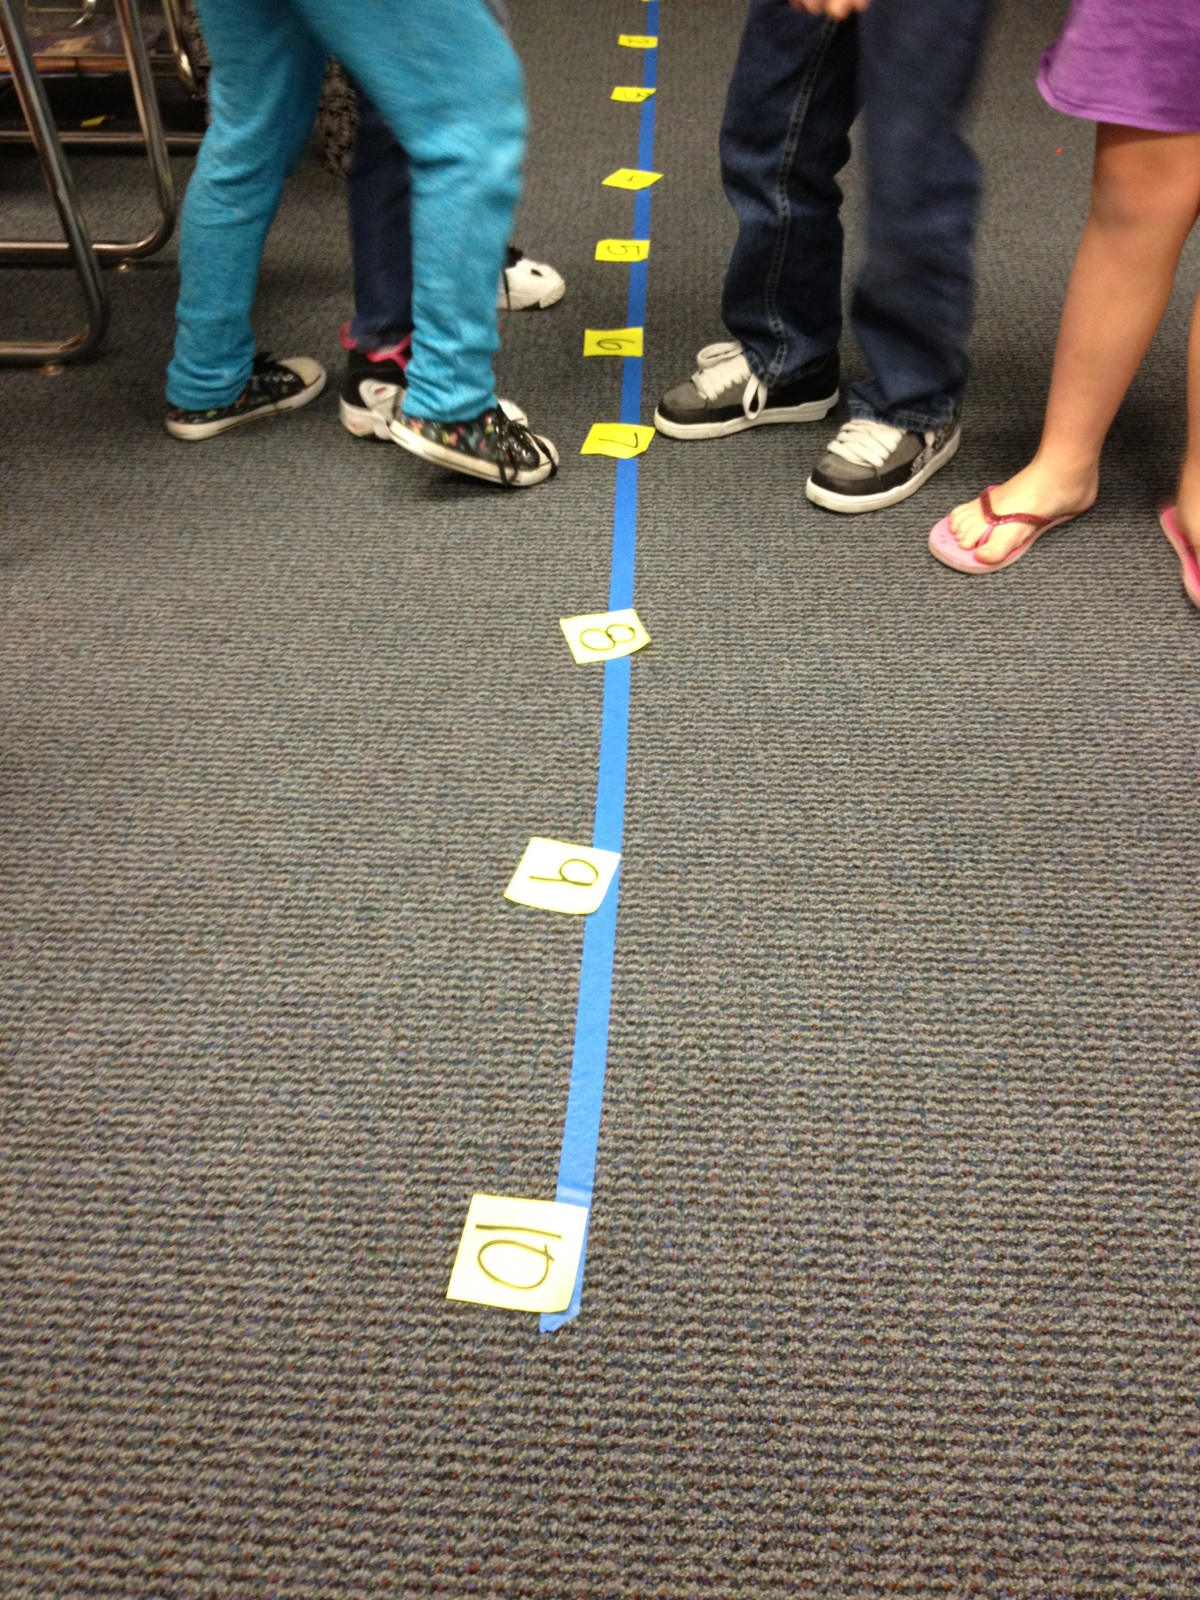 Walk the line with numbers the bubbly blonde teacher for Floor number line